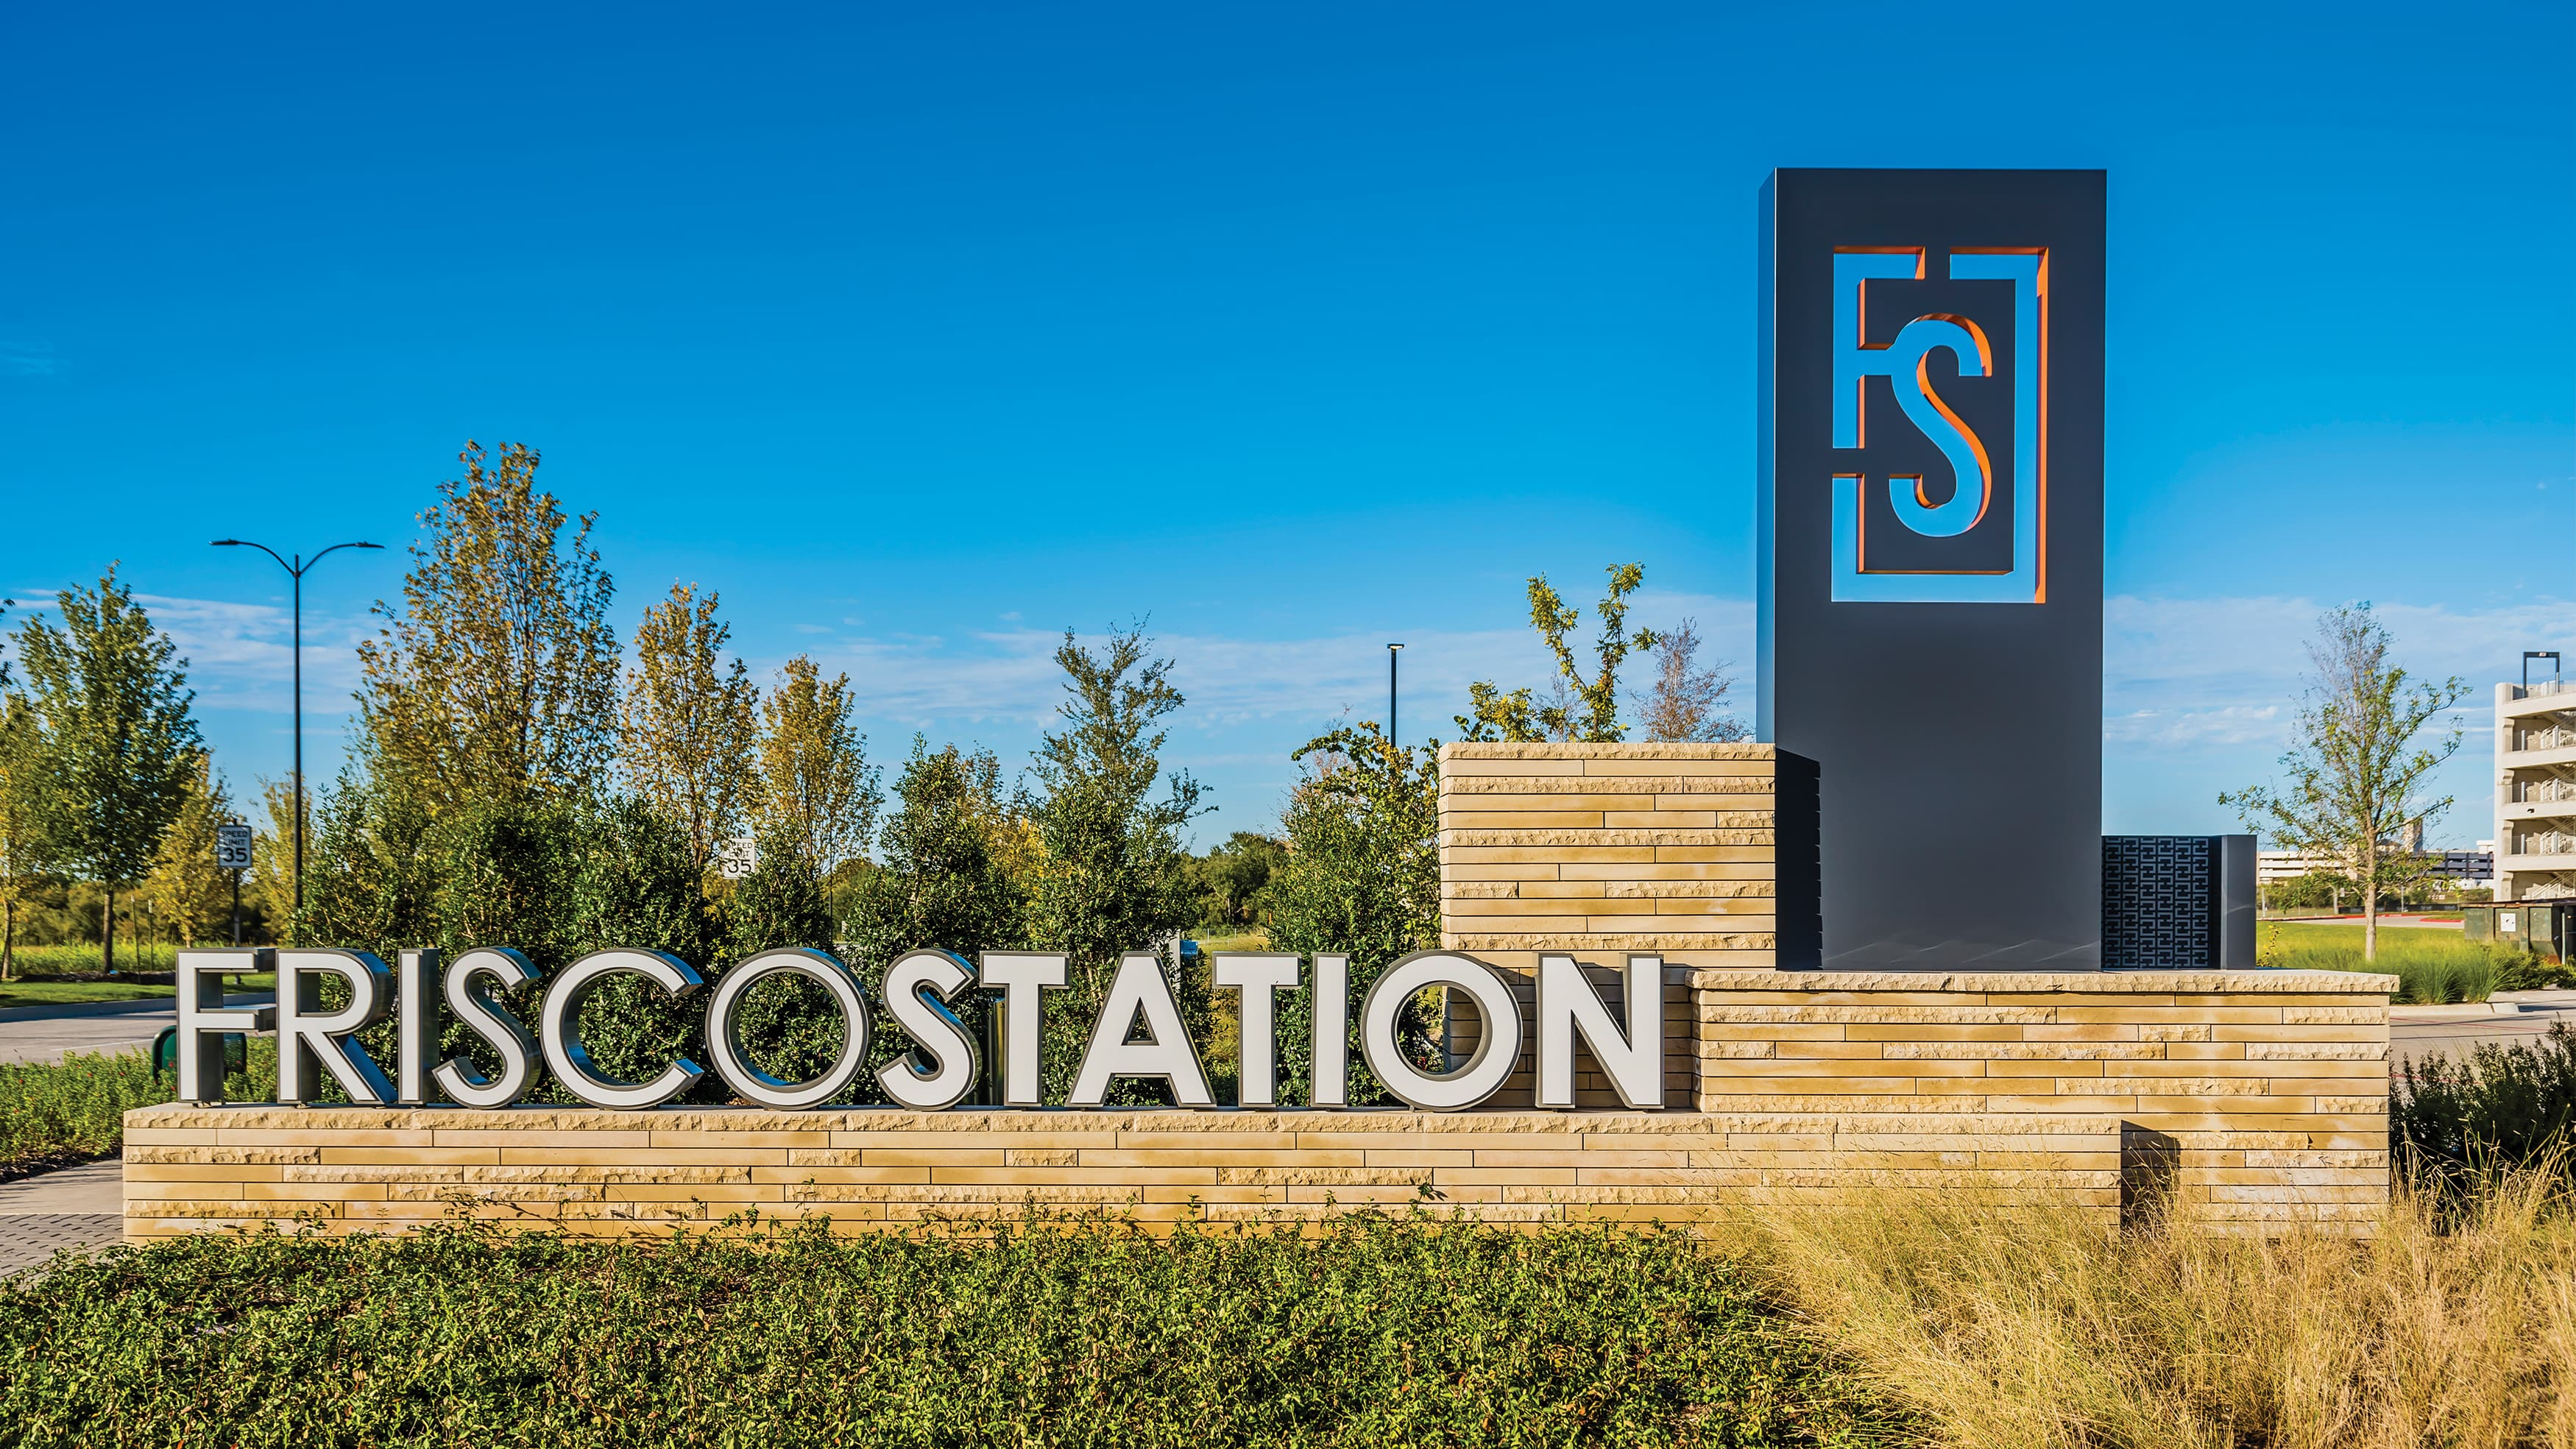 Monument Signage at the mixed-use Frisco Station project in Frisco, Texas